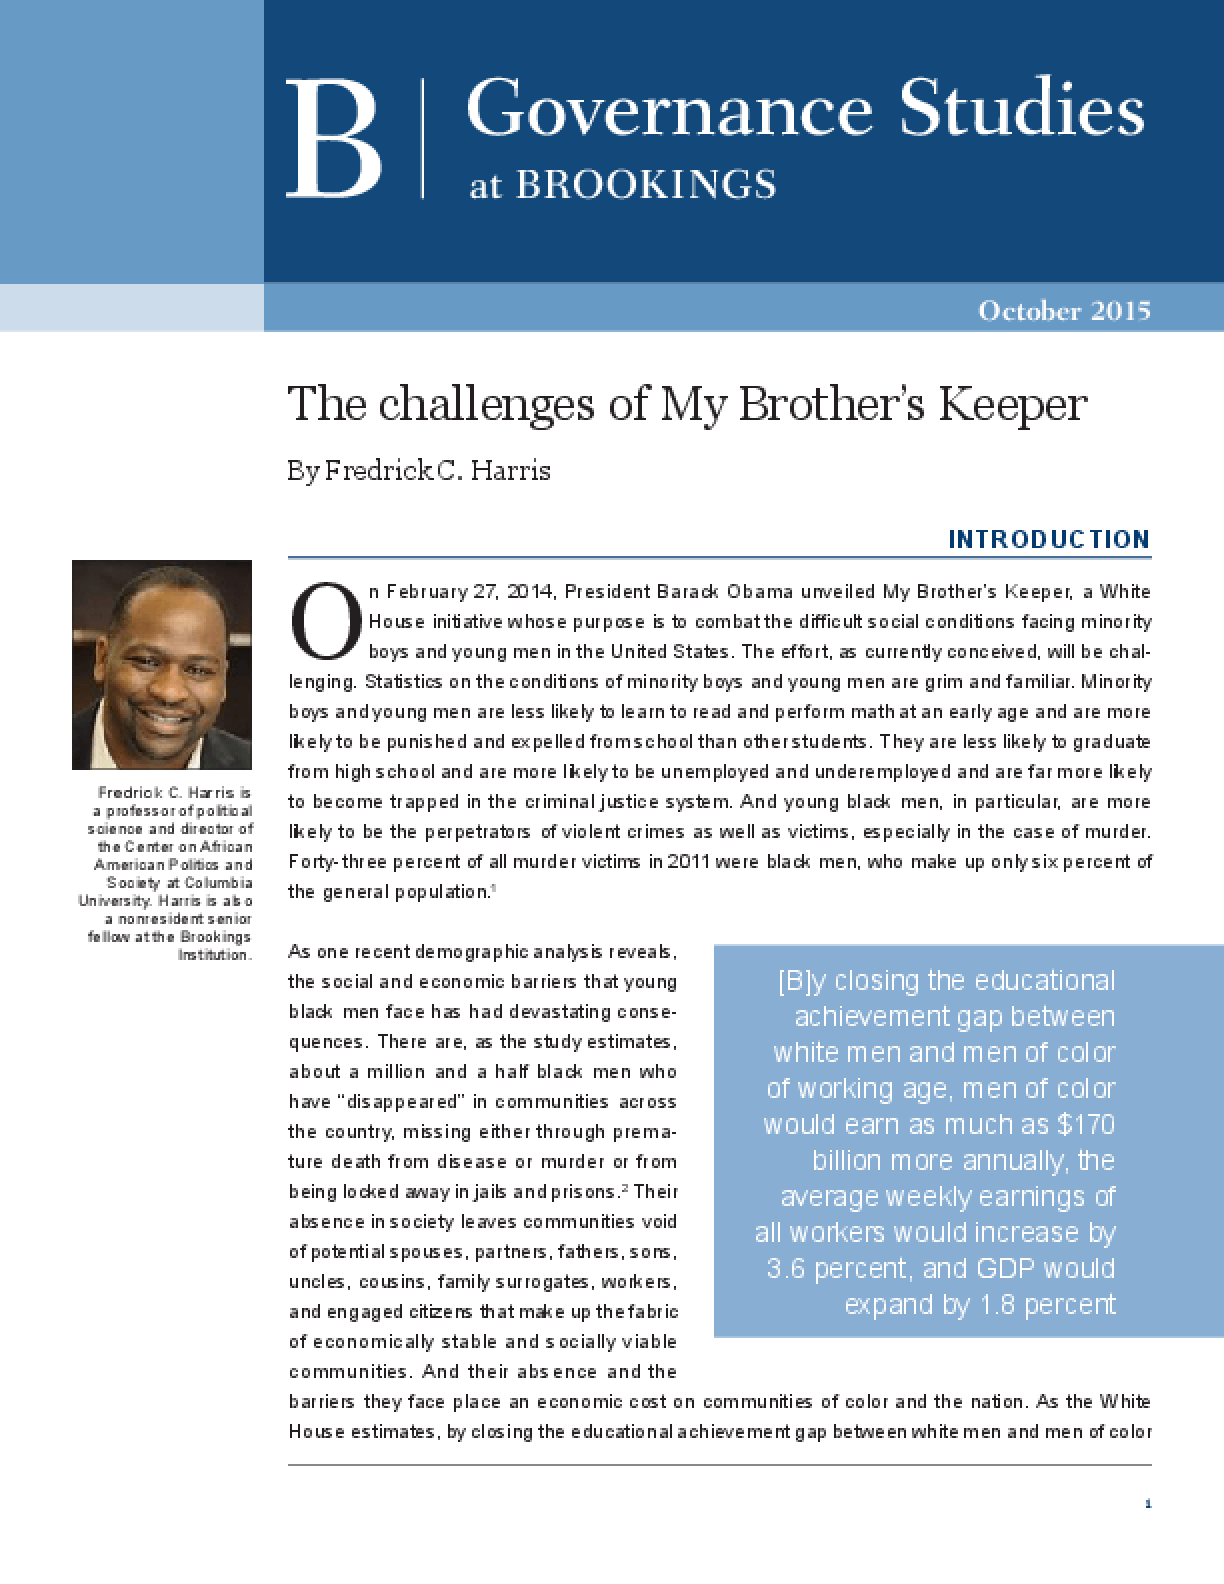 The Challenges of My Brother's Keeper